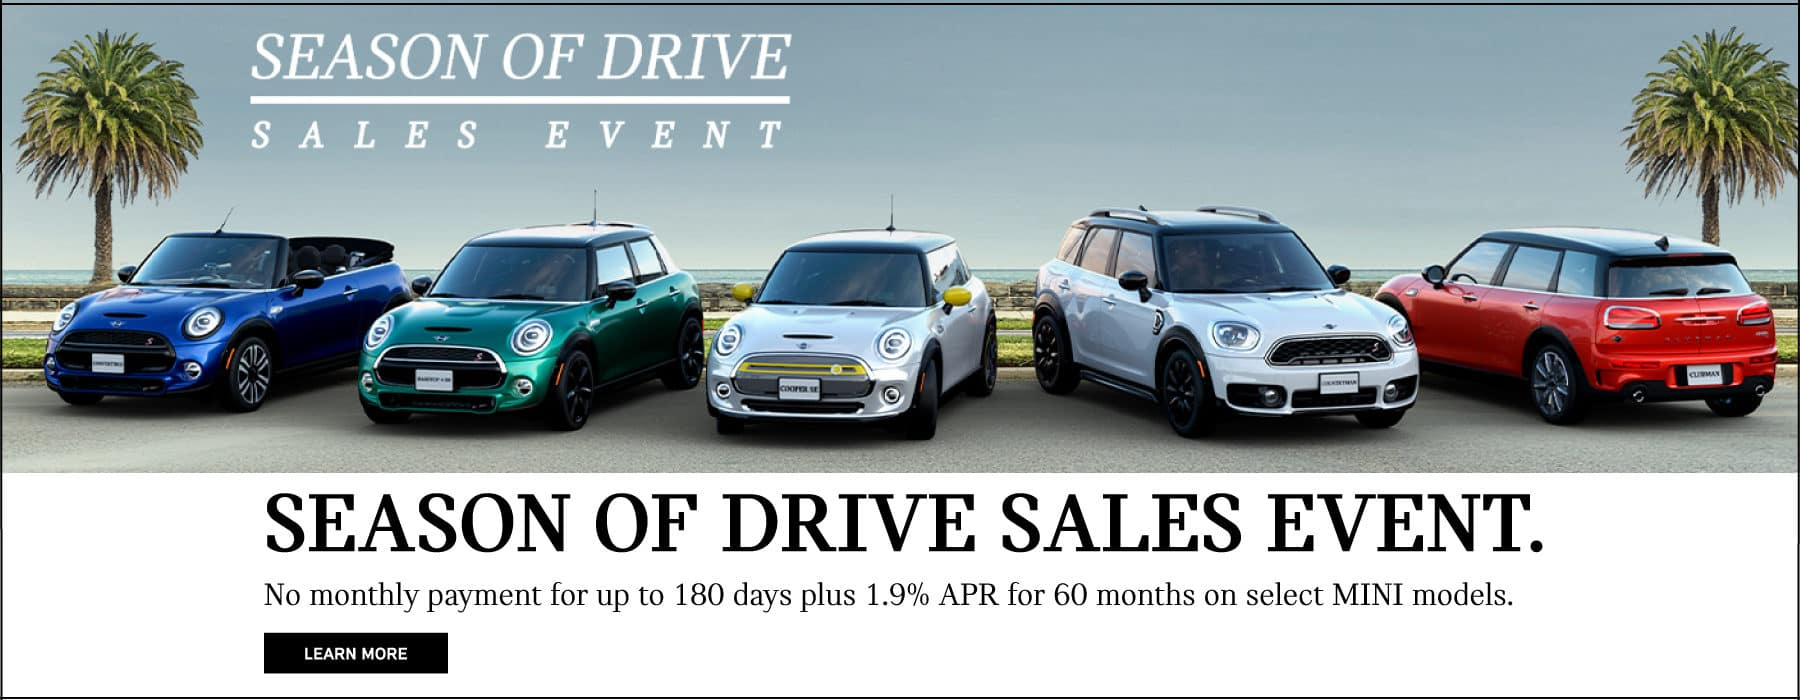 Season of Drive Sales Event. No monthly payment for up to 180 days plus 1.9% APR for 60 months on select MINI Models. Learn More